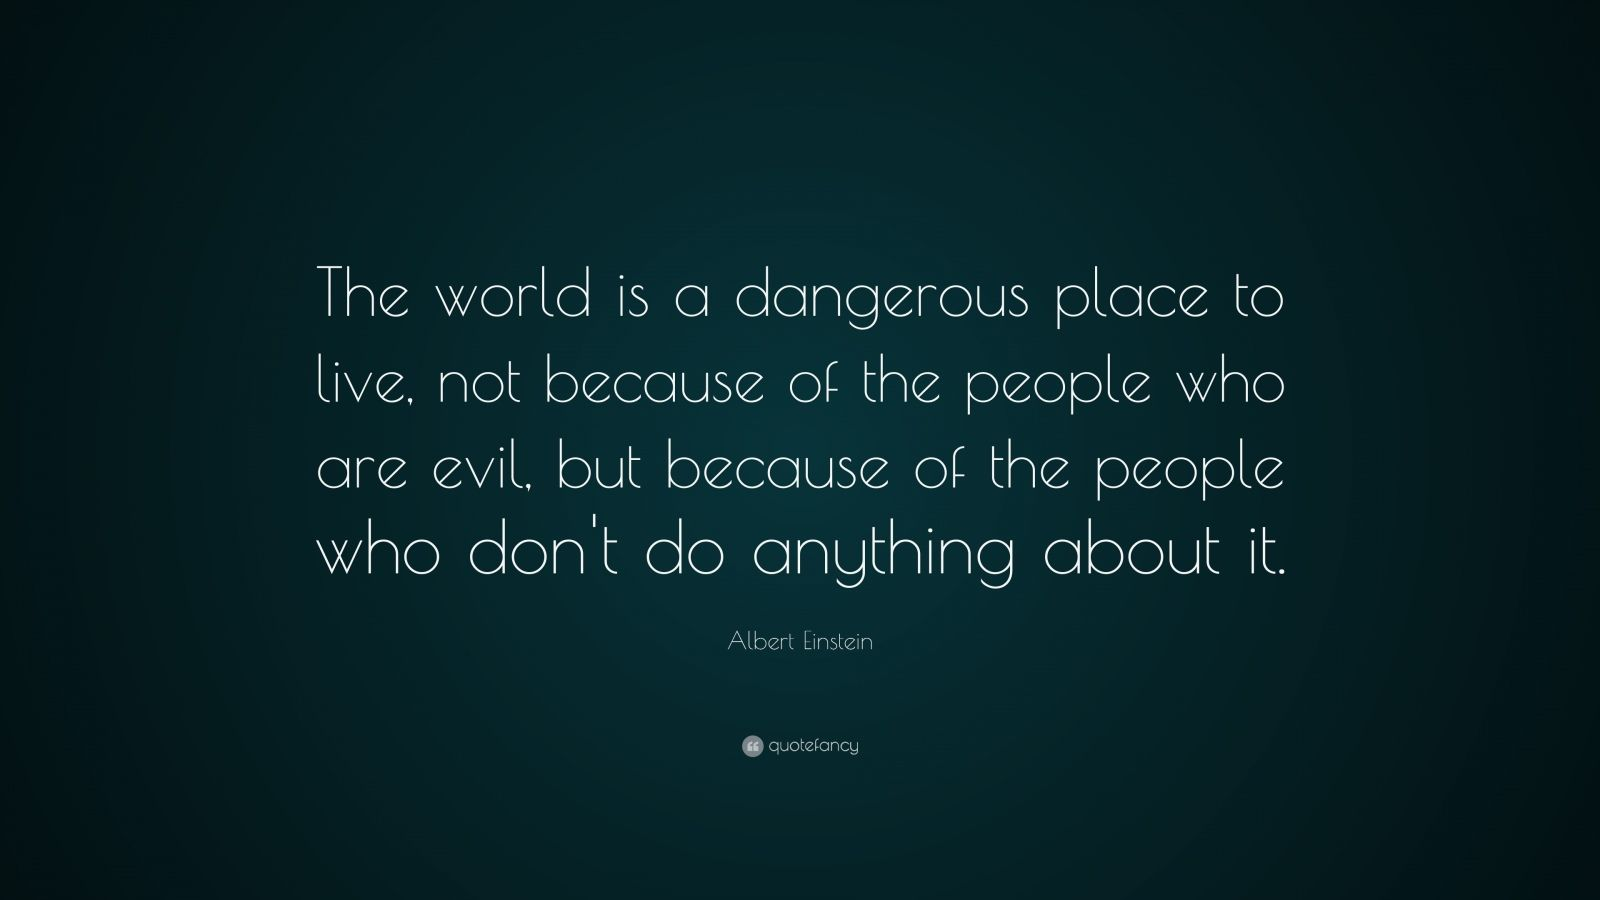 The World Is a Dangerous Place Albert Einstein Quotes